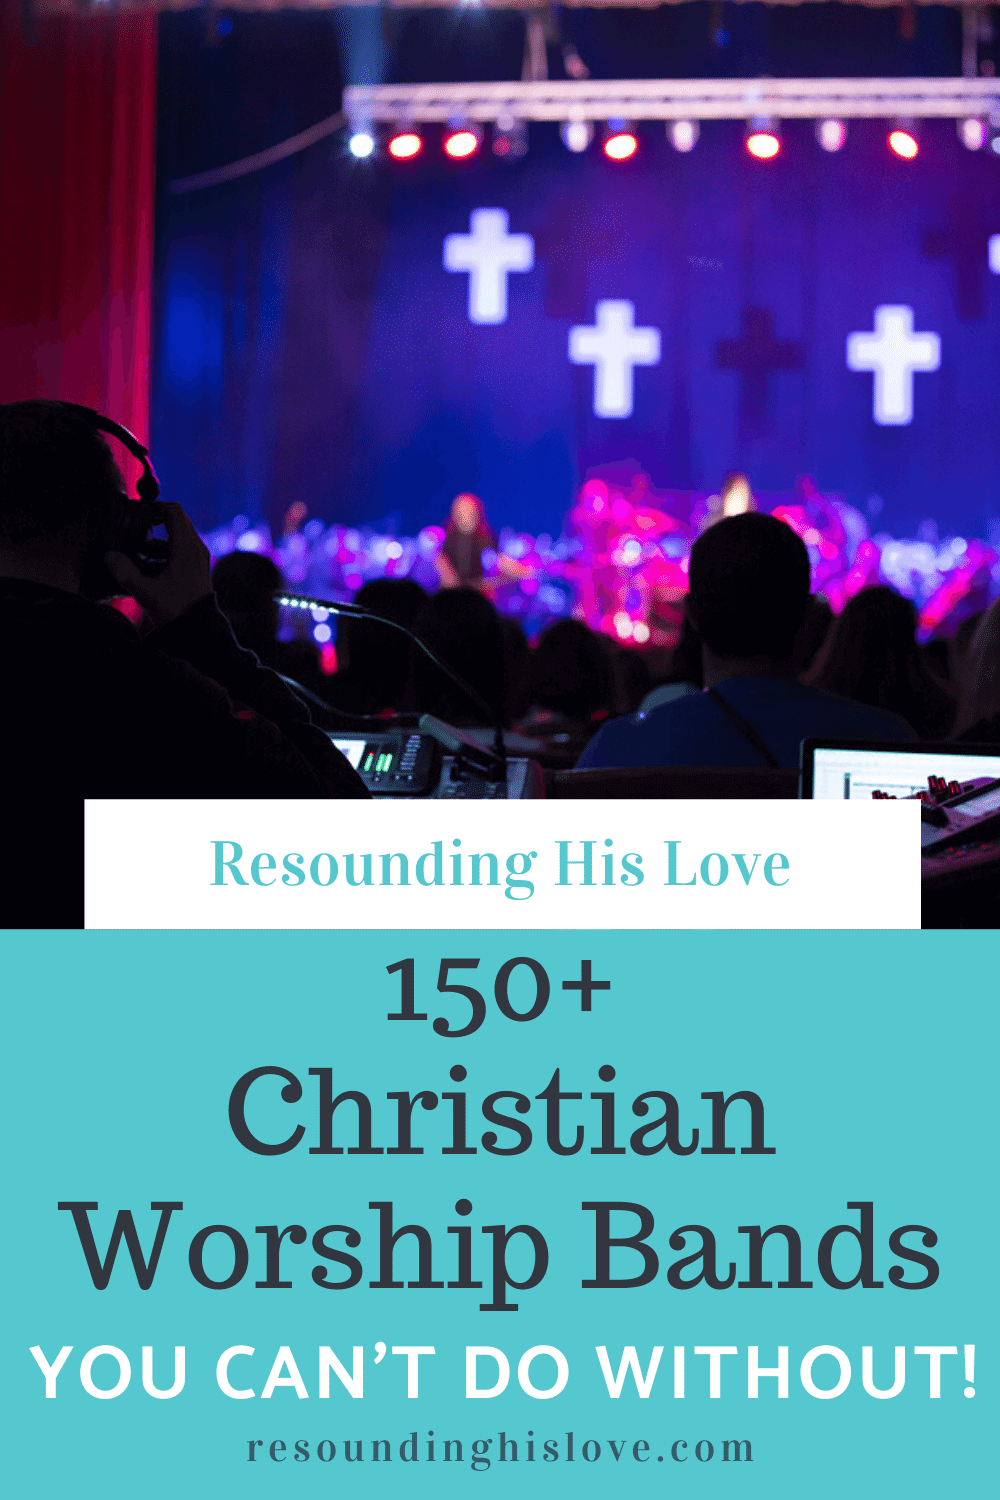 150+ Christian Worship Bands from A-Z